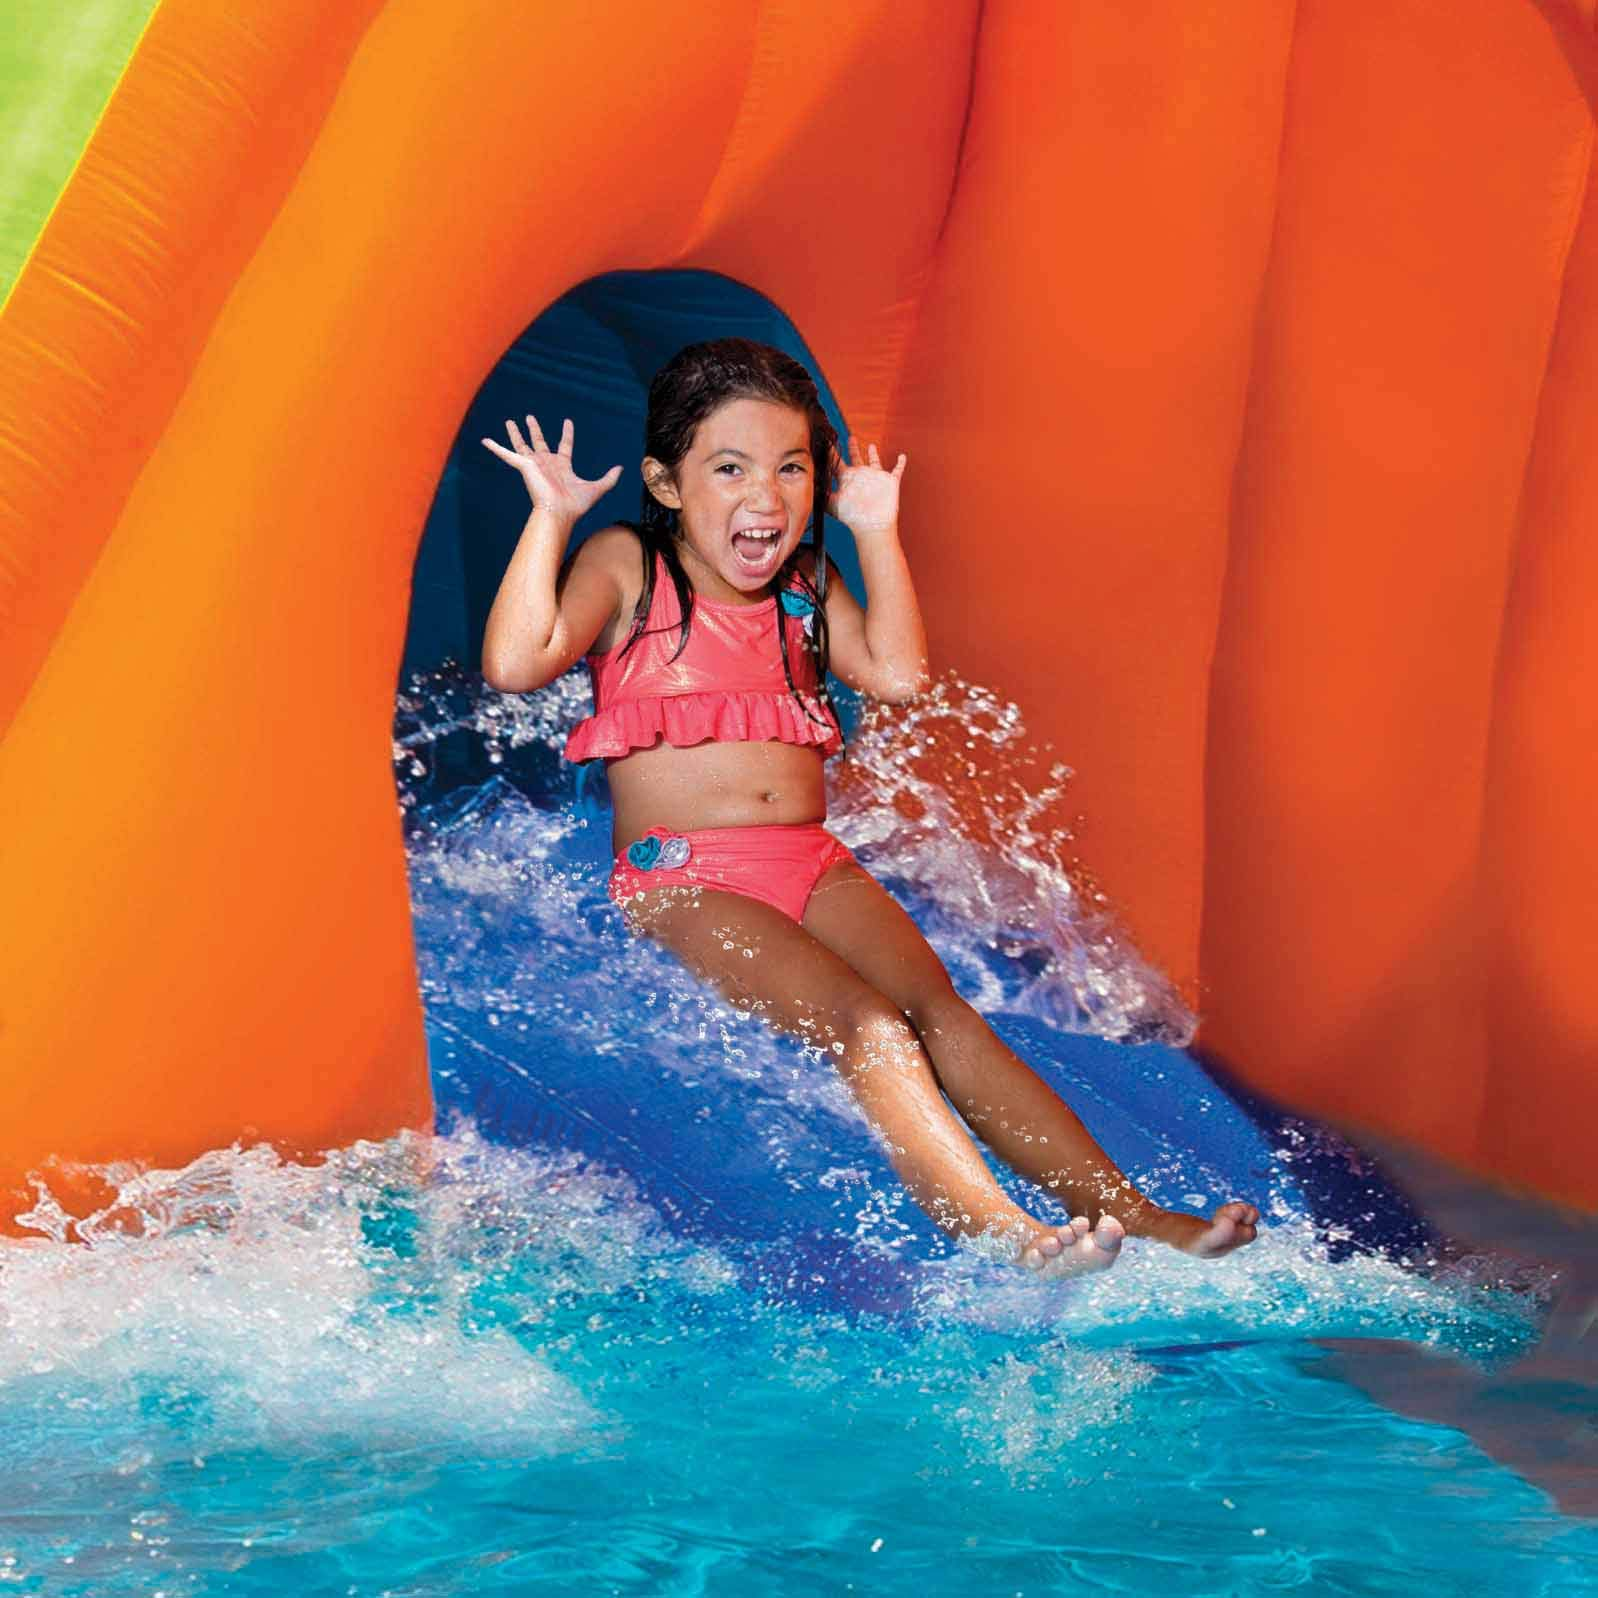 BANZAI 90494 Sidewinder Falls Inflatable Water Slide with Tunnel Ramp Slide by BANZAI (Image #3)